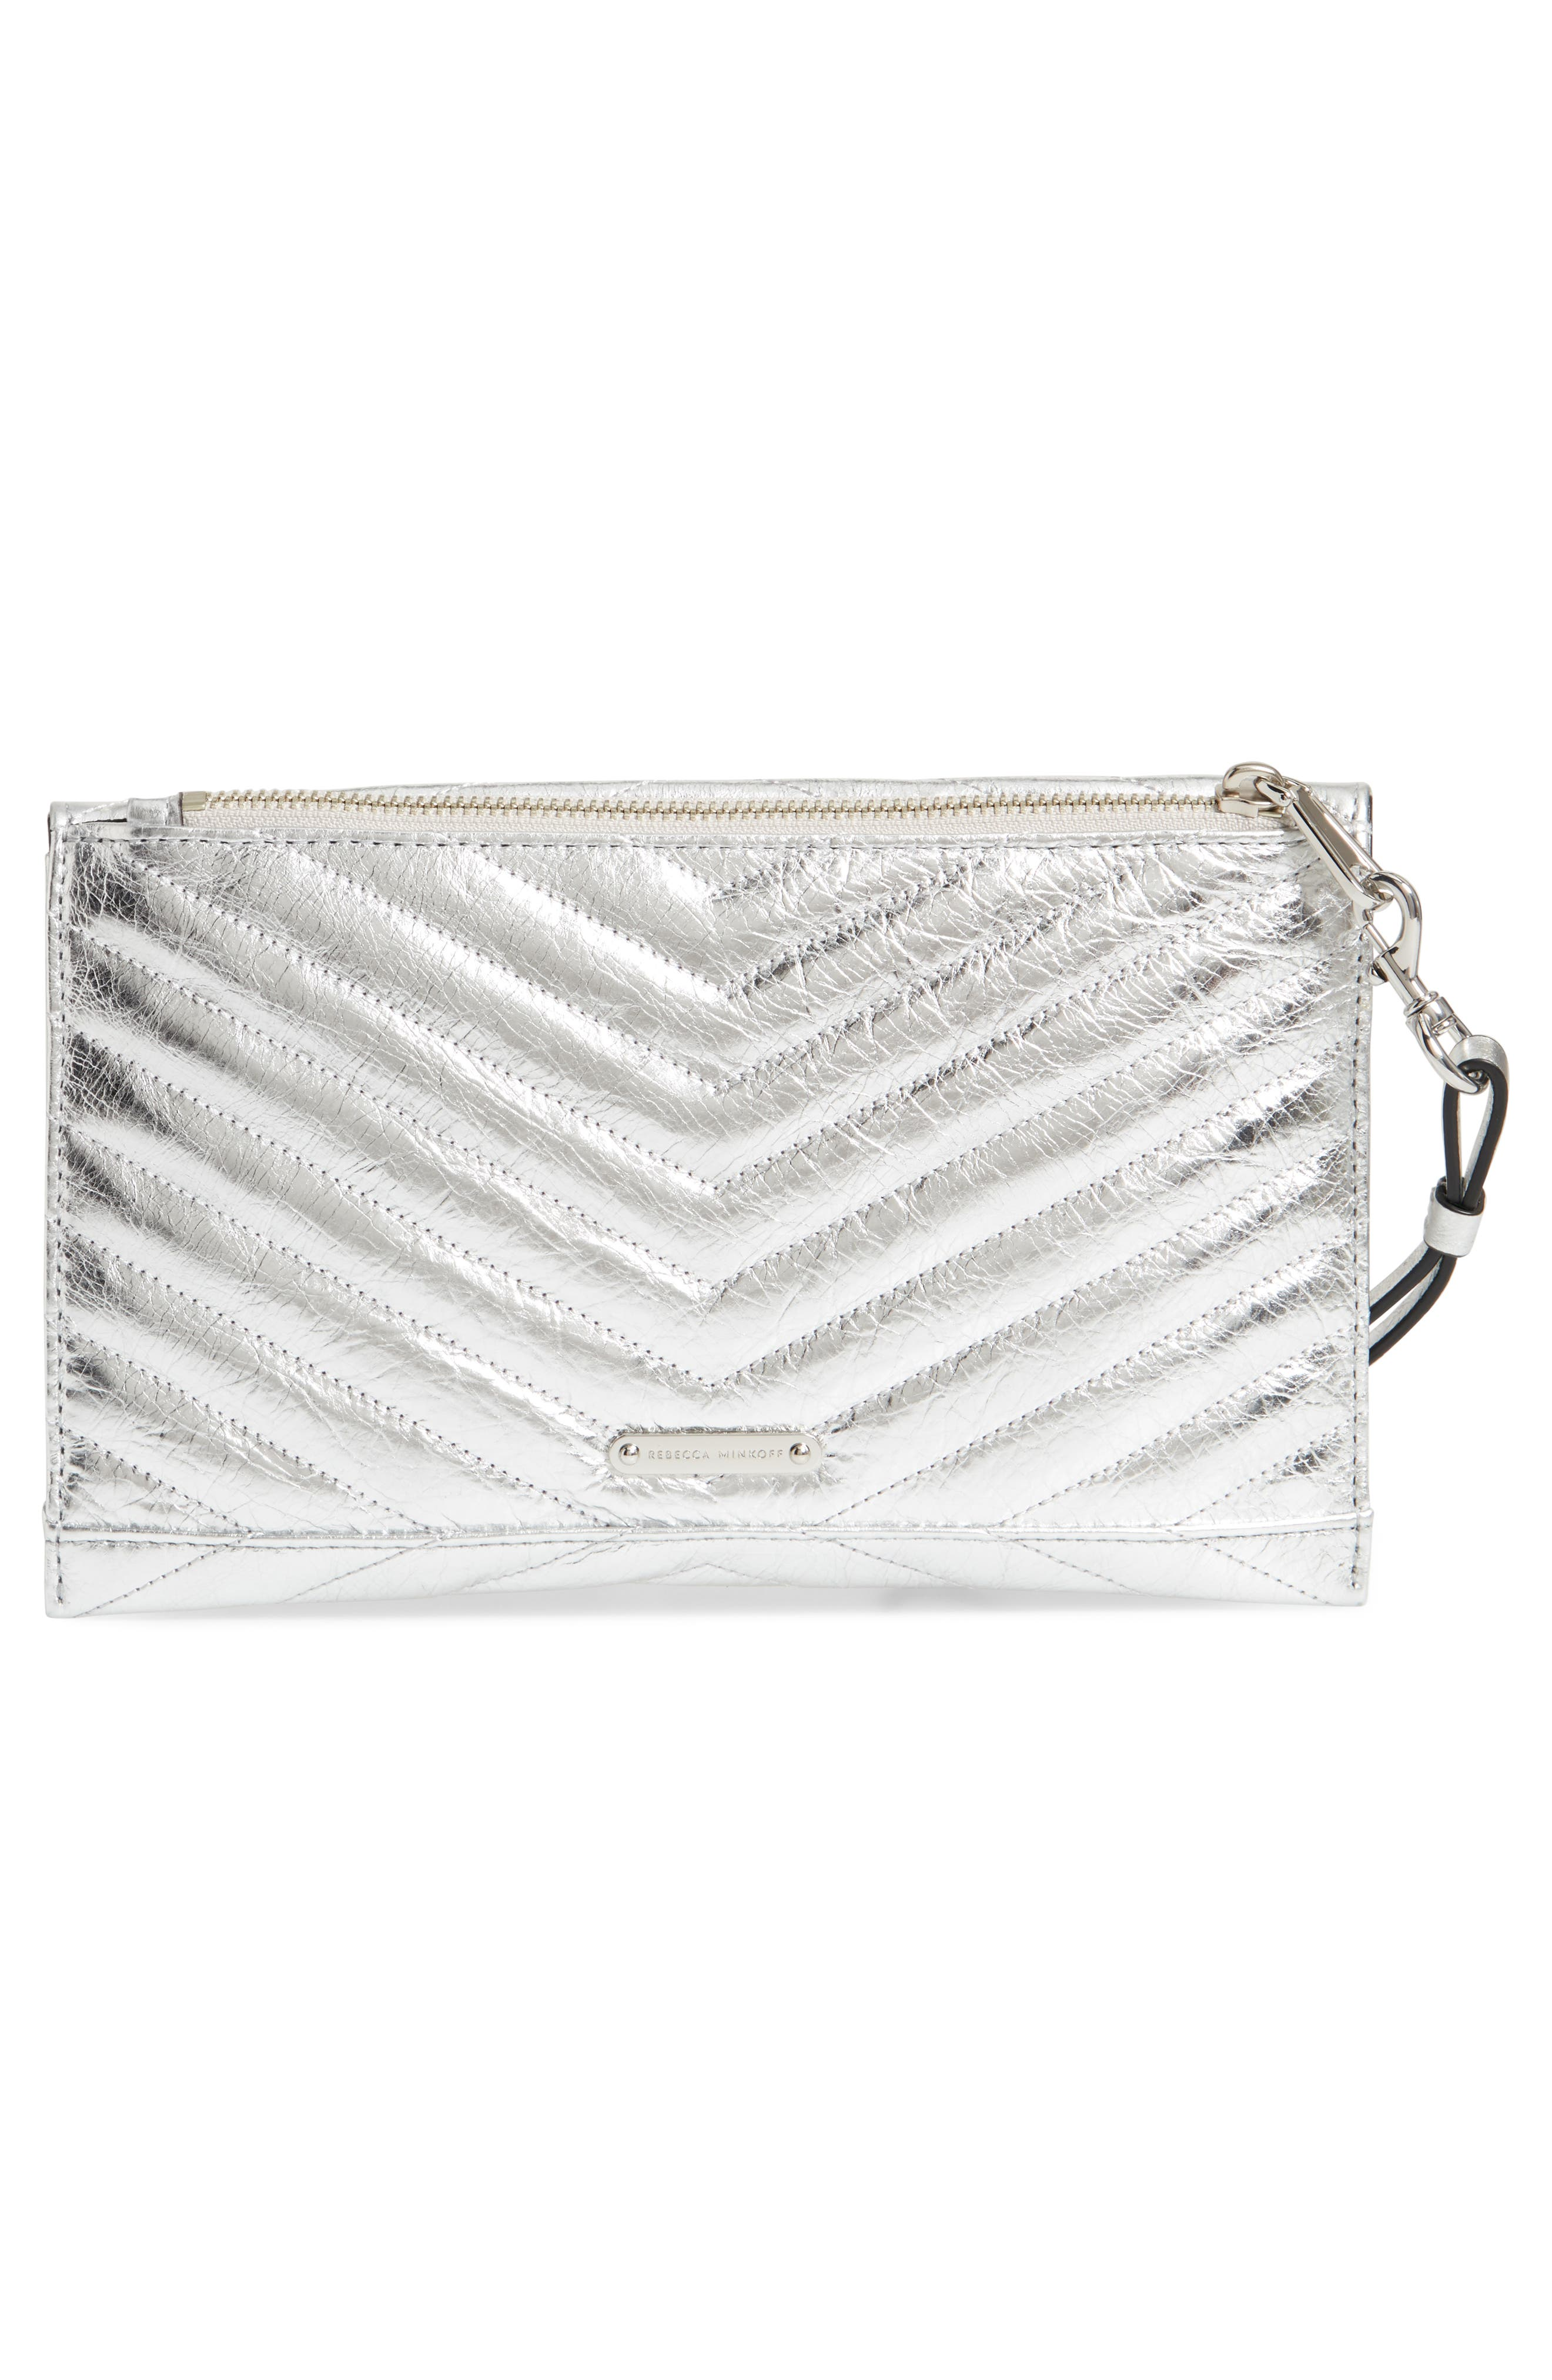 REBECCA MINKOFF, Leo Quilted Leather Clutch, Alternate thumbnail 4, color, SILVER